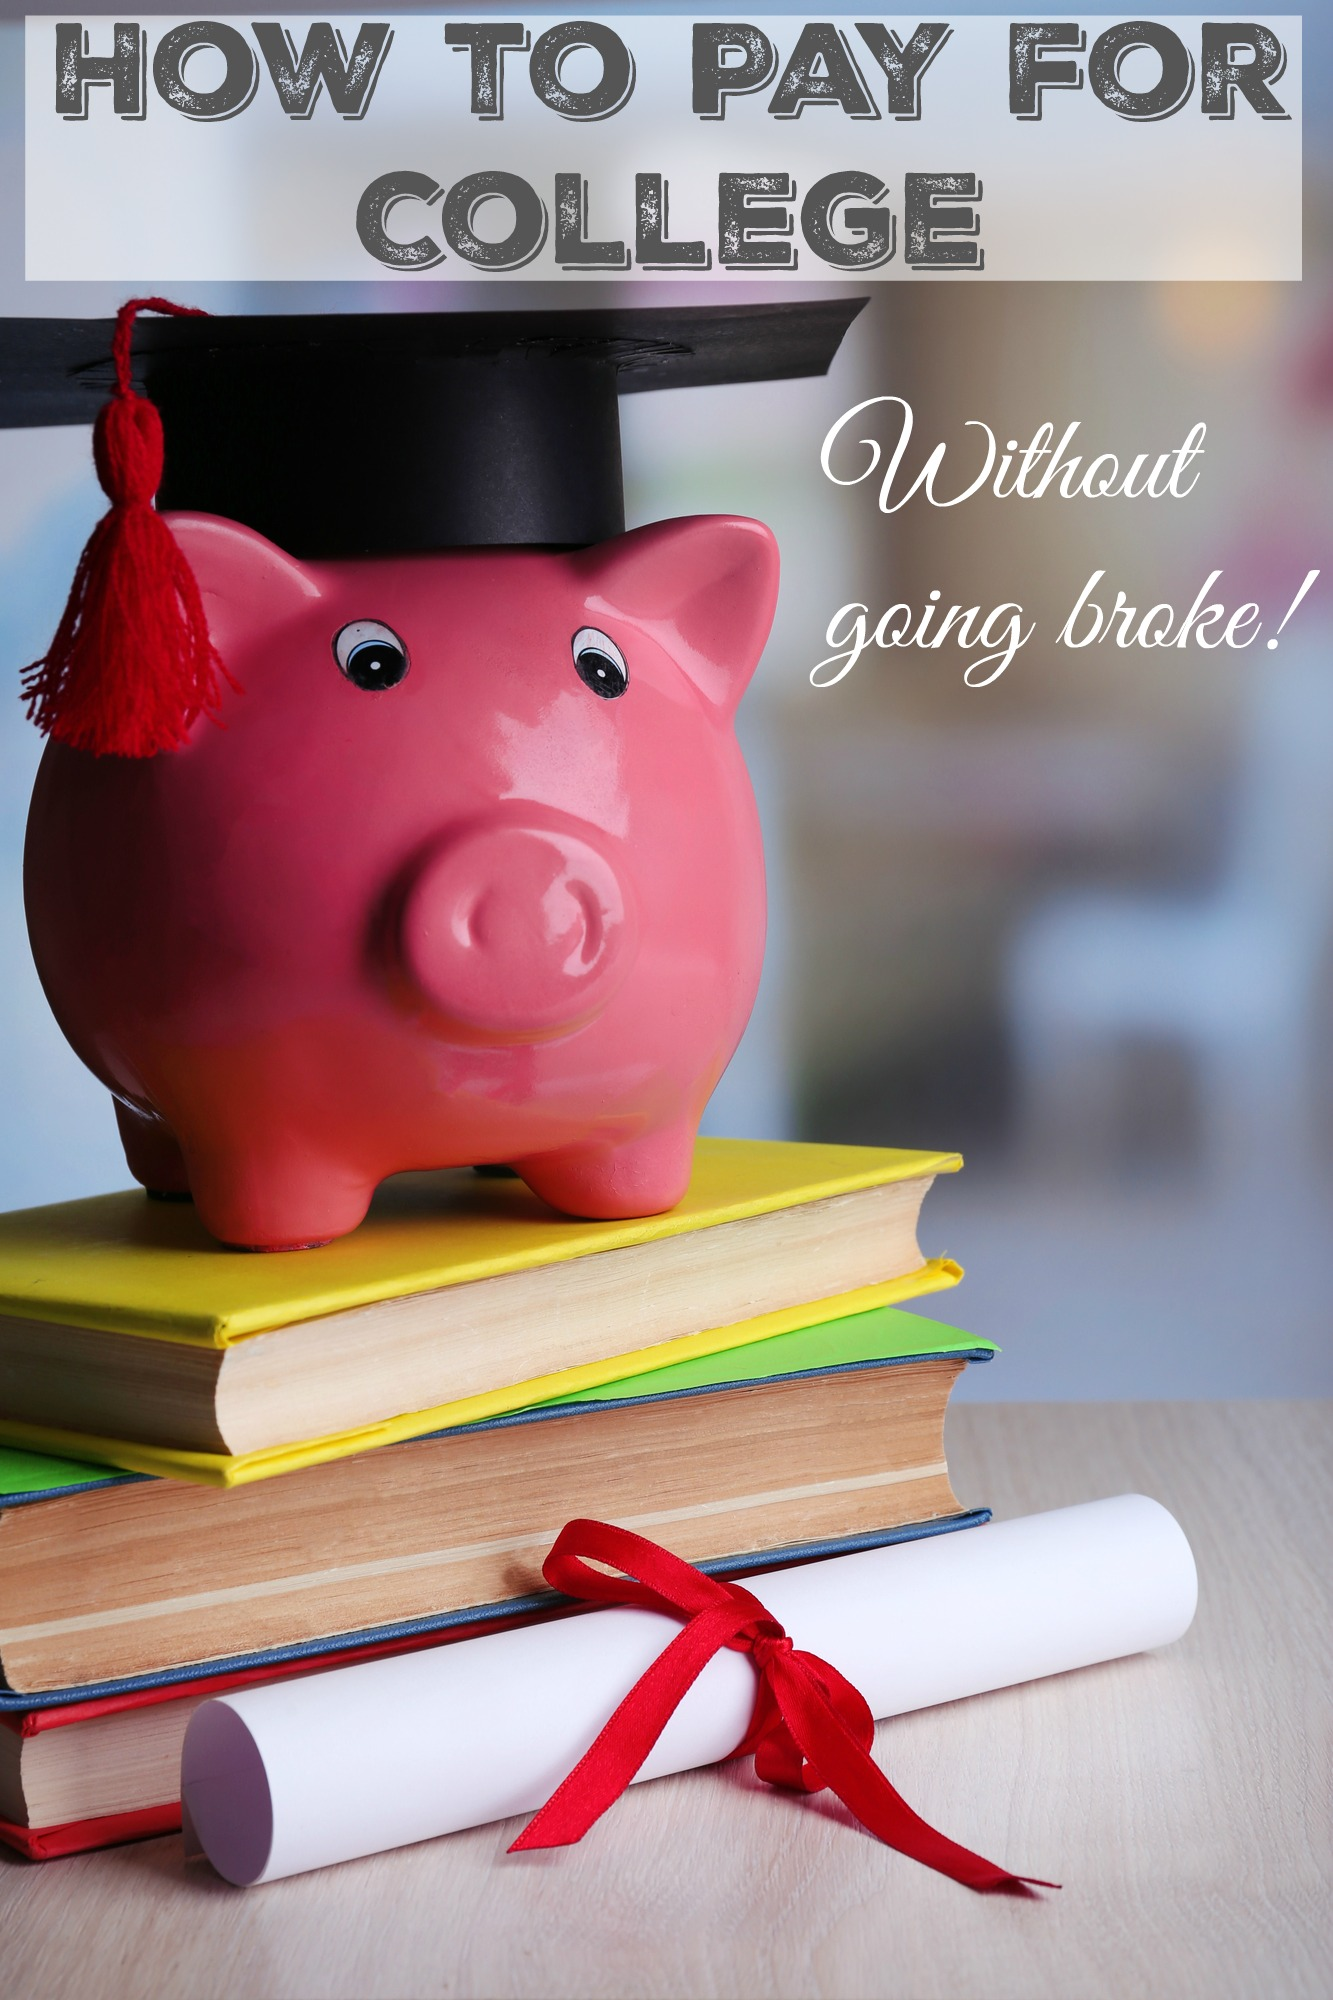 How to pay for college without going broke. College costs have skyrocketed over the last few years, making it expensive to get an education. Find out how you can afford to send your child to college without going completely broke. Real advice from a parent who has been there!